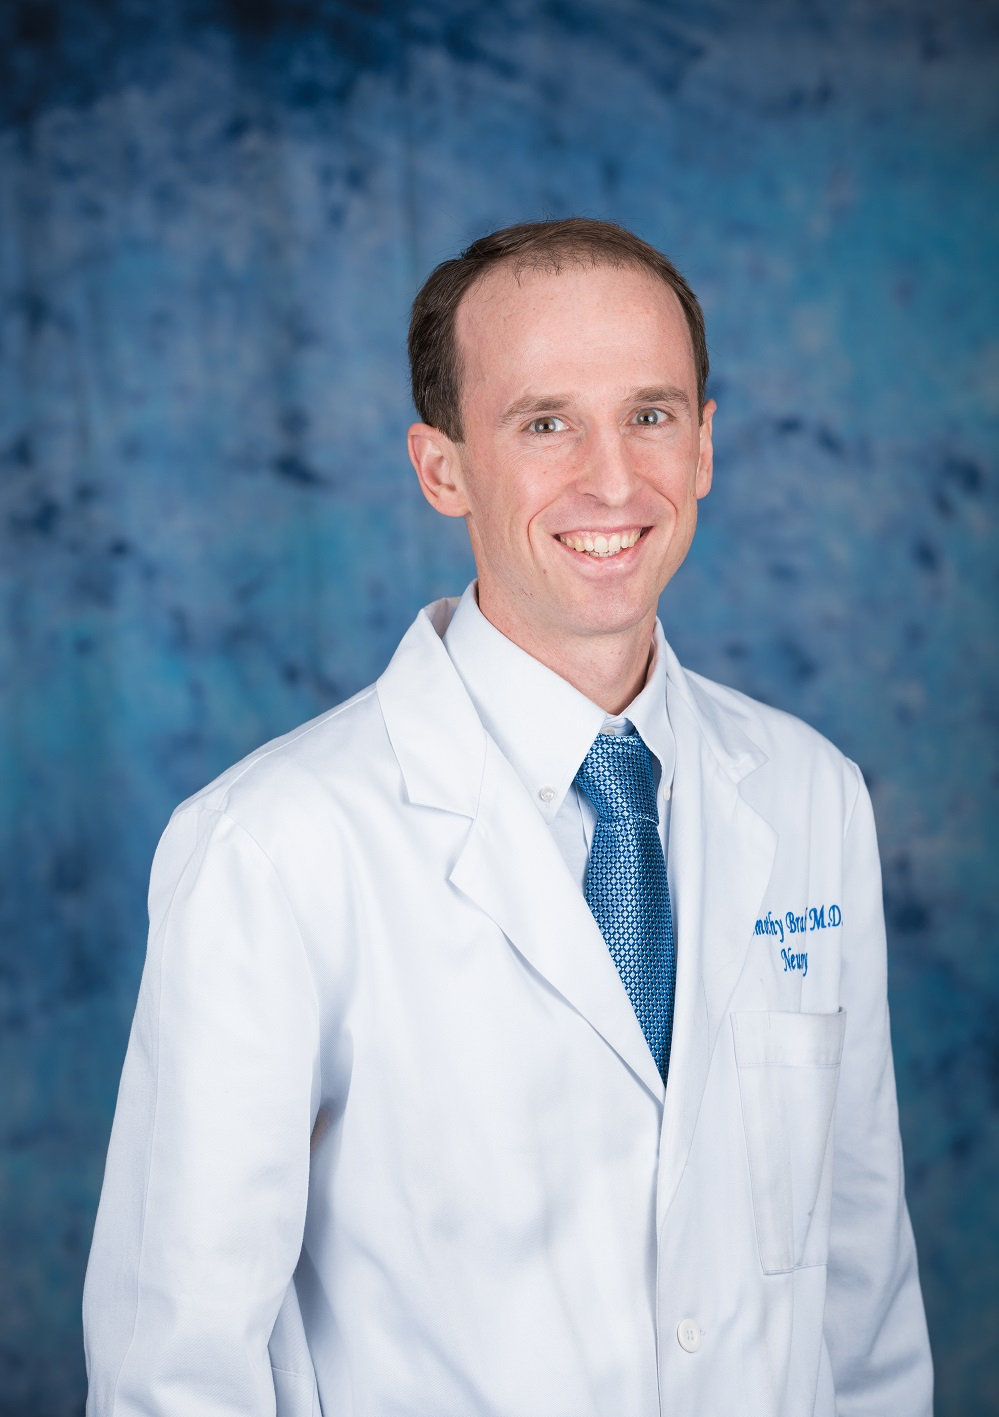 Timothy Braden, MD of Knoxville Neurology Specialists